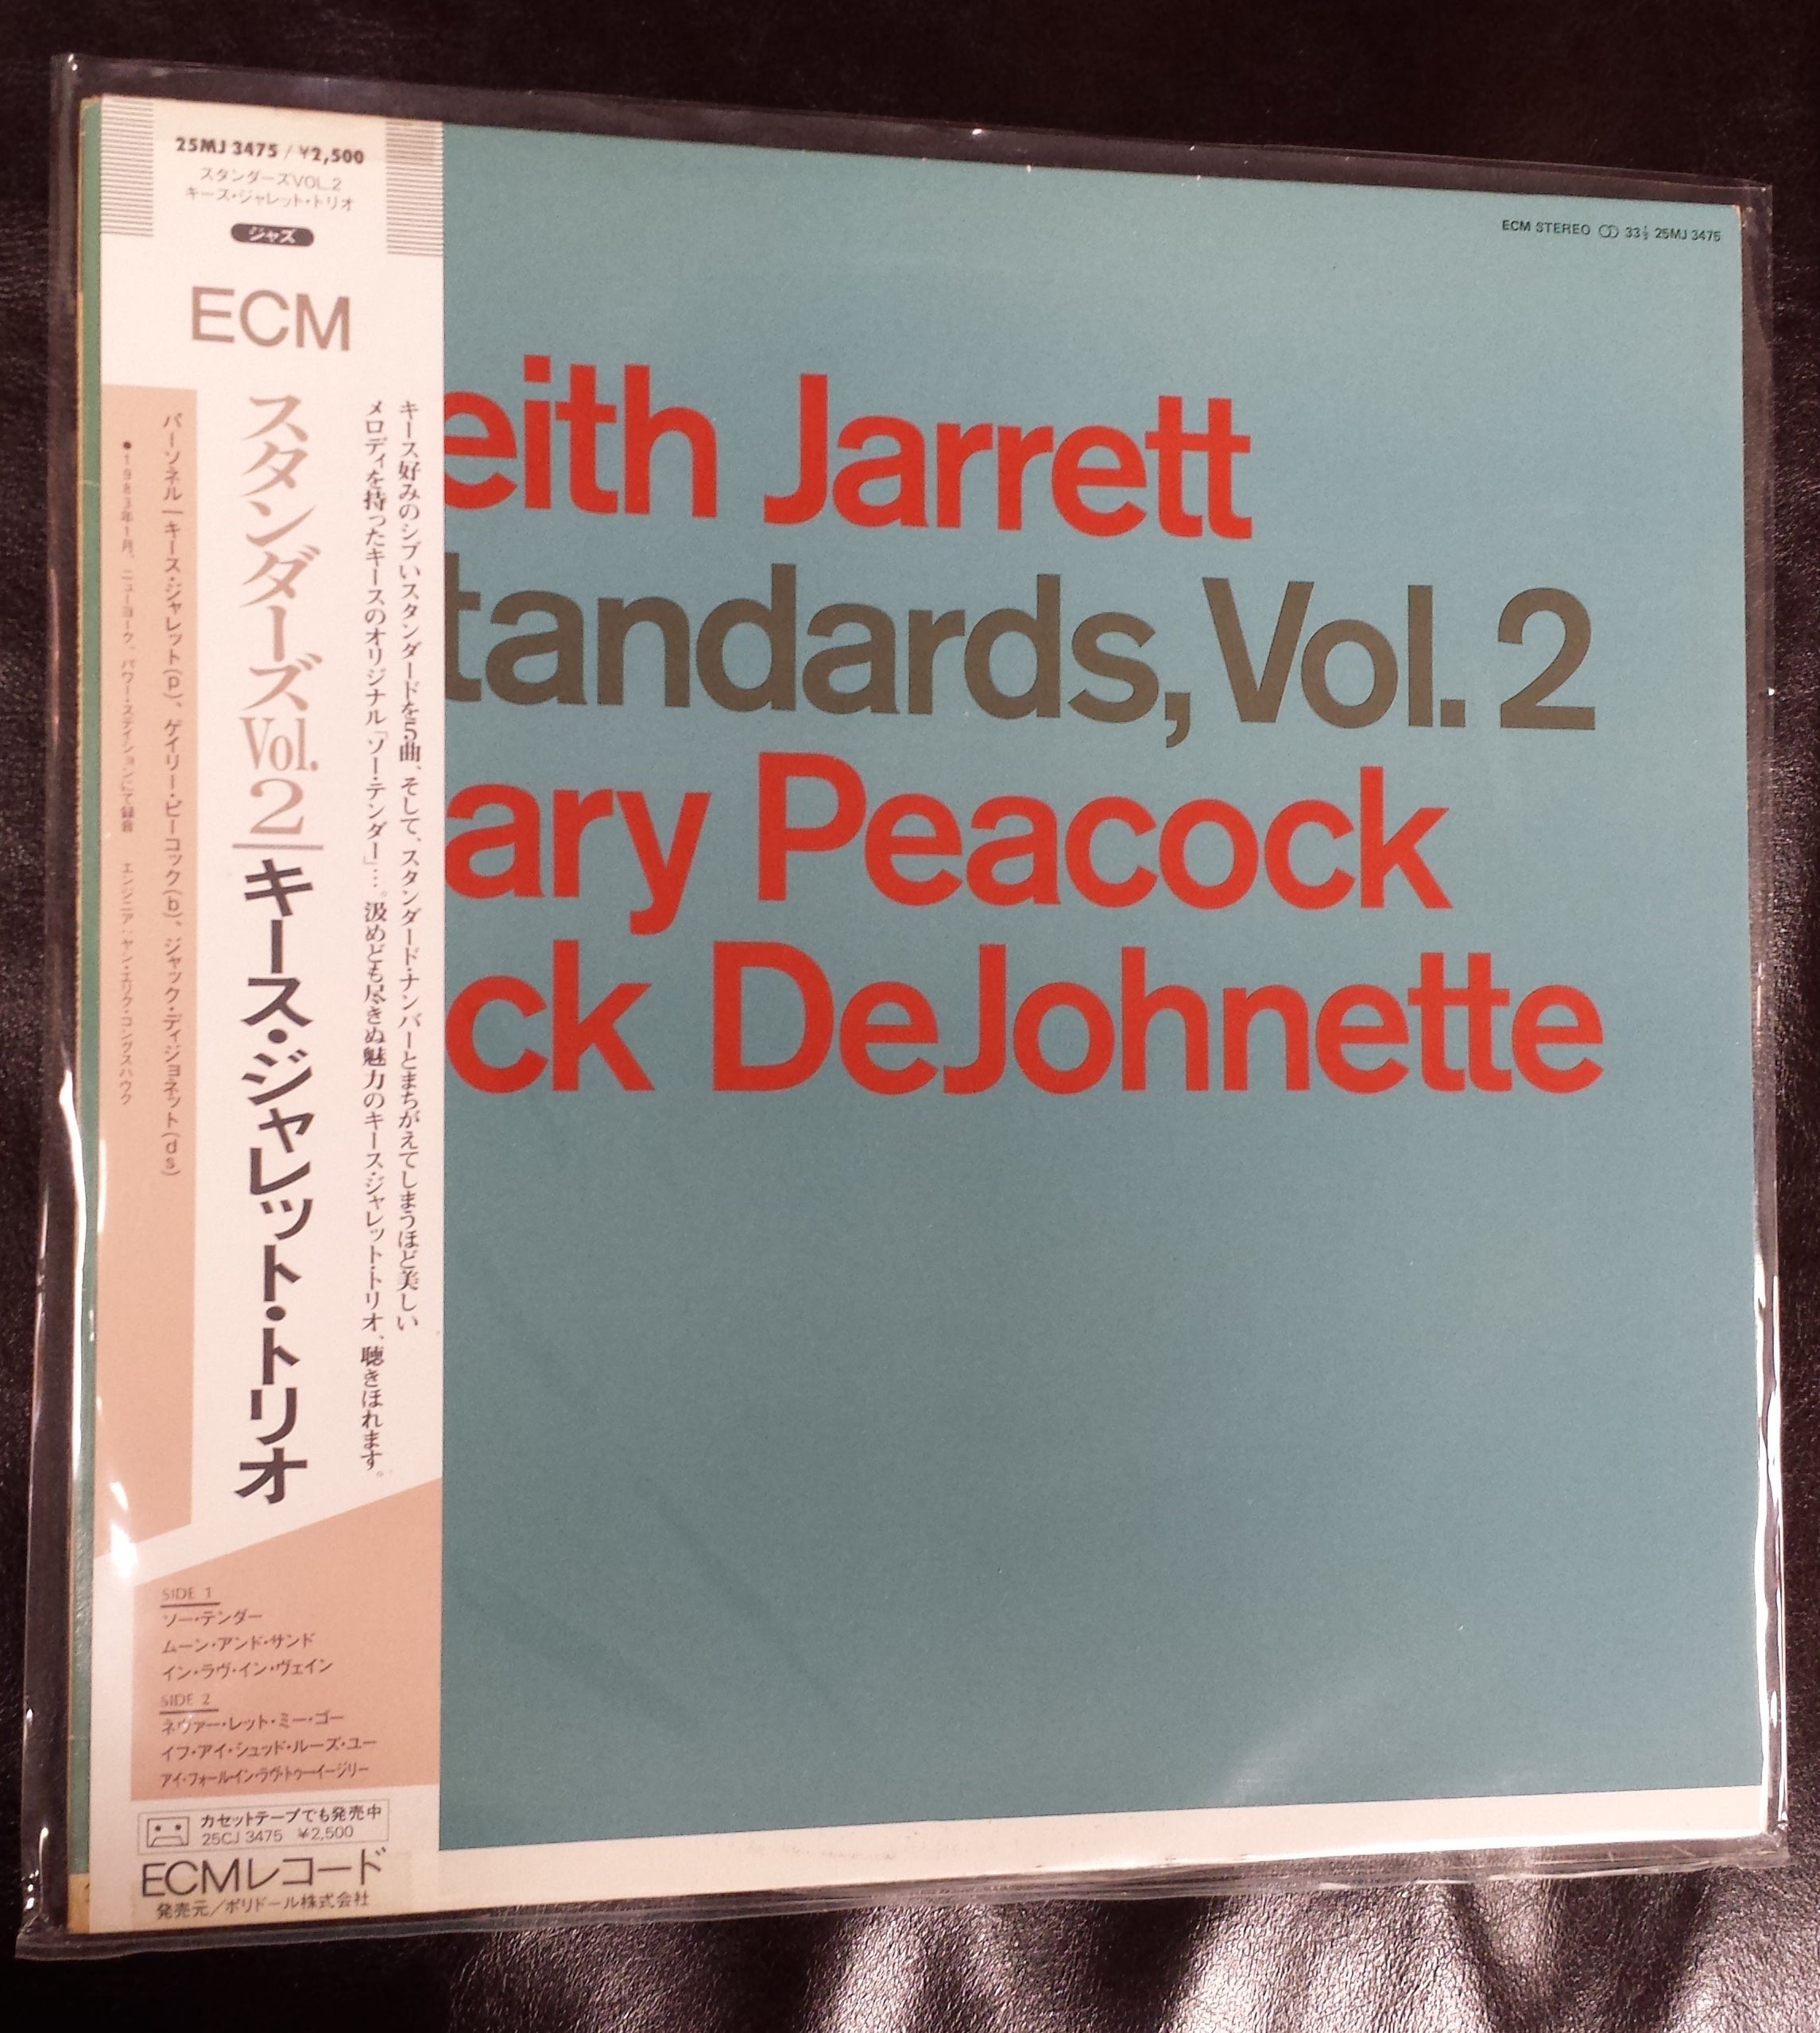 Keith Jarrett Trio - Standards Vol 2